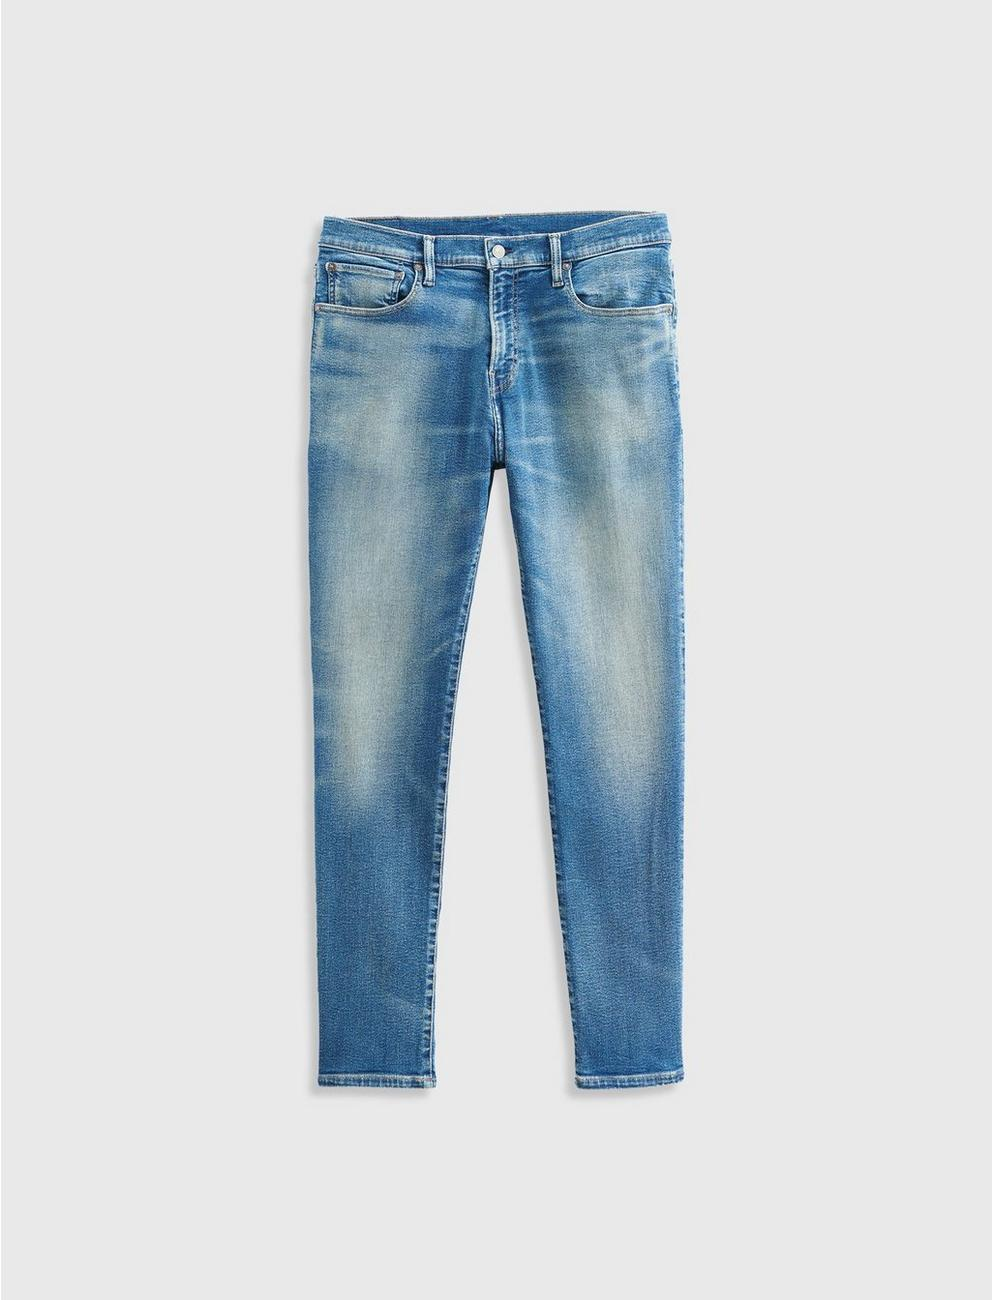 105 SLIM TAPER ADVANCED STRETCH JEAN, BIG OAK